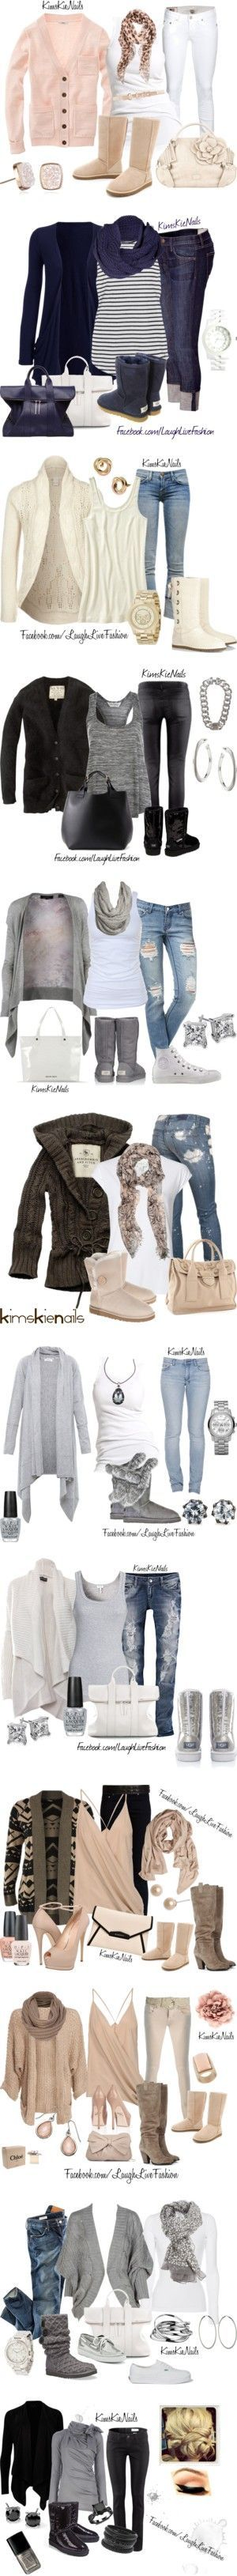 Lets talk about UGGs, baby...! by kimskienails liked on Polyvore